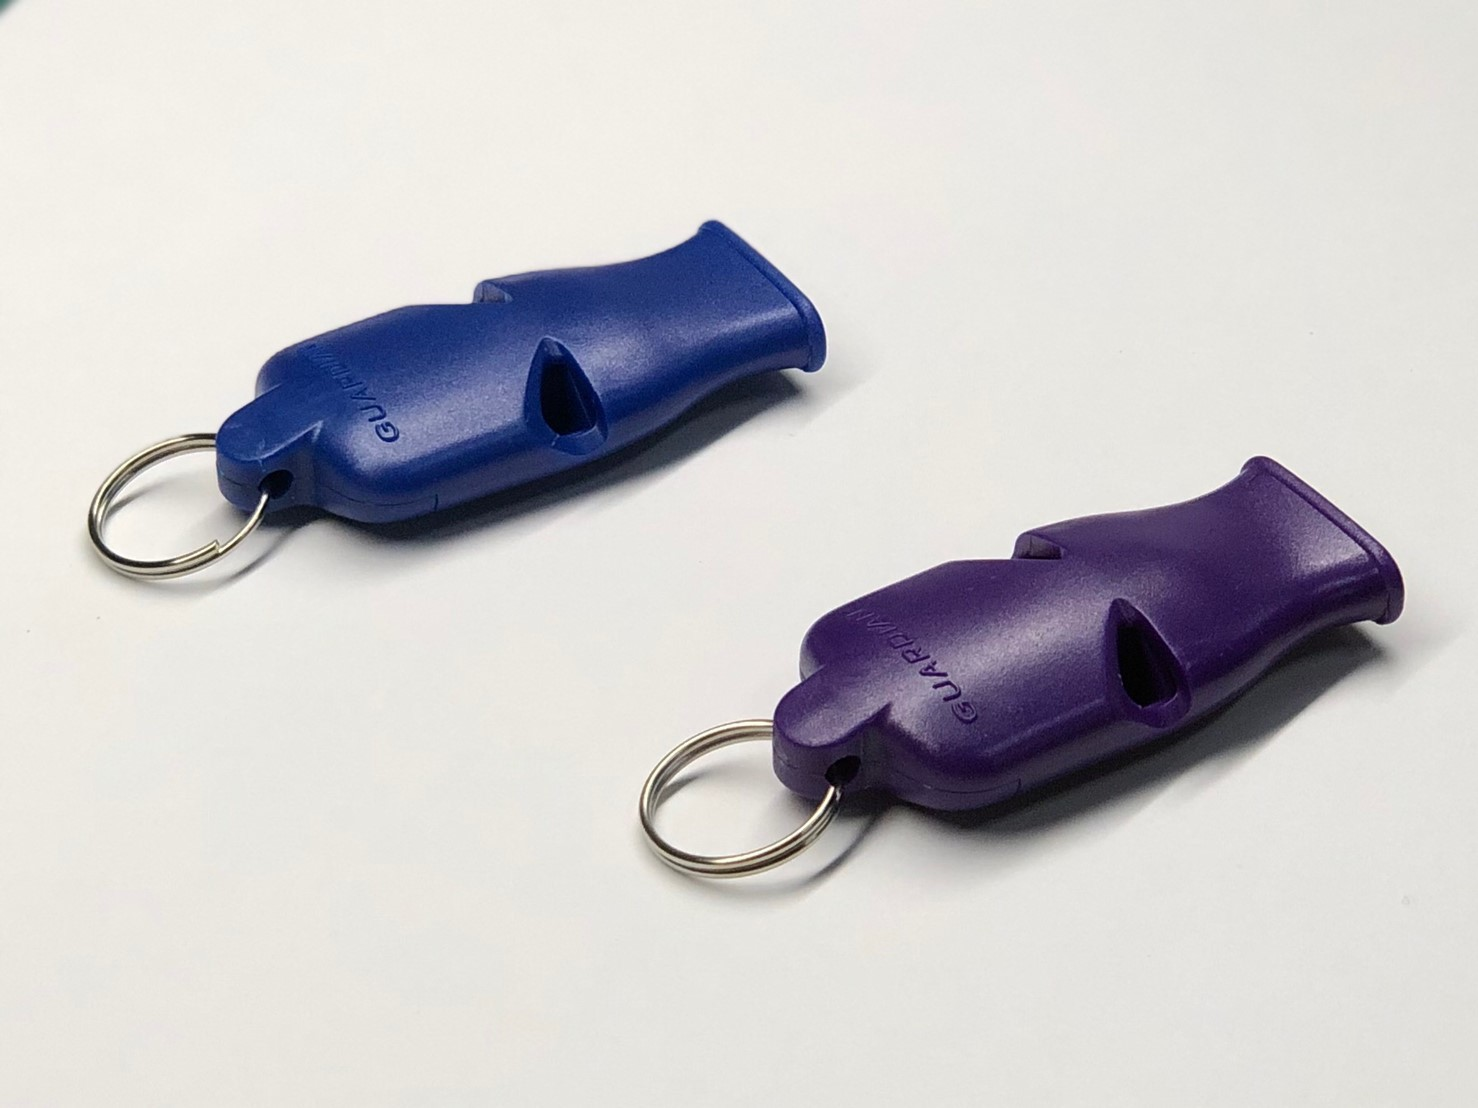 High Pitch Penetrating Whistle